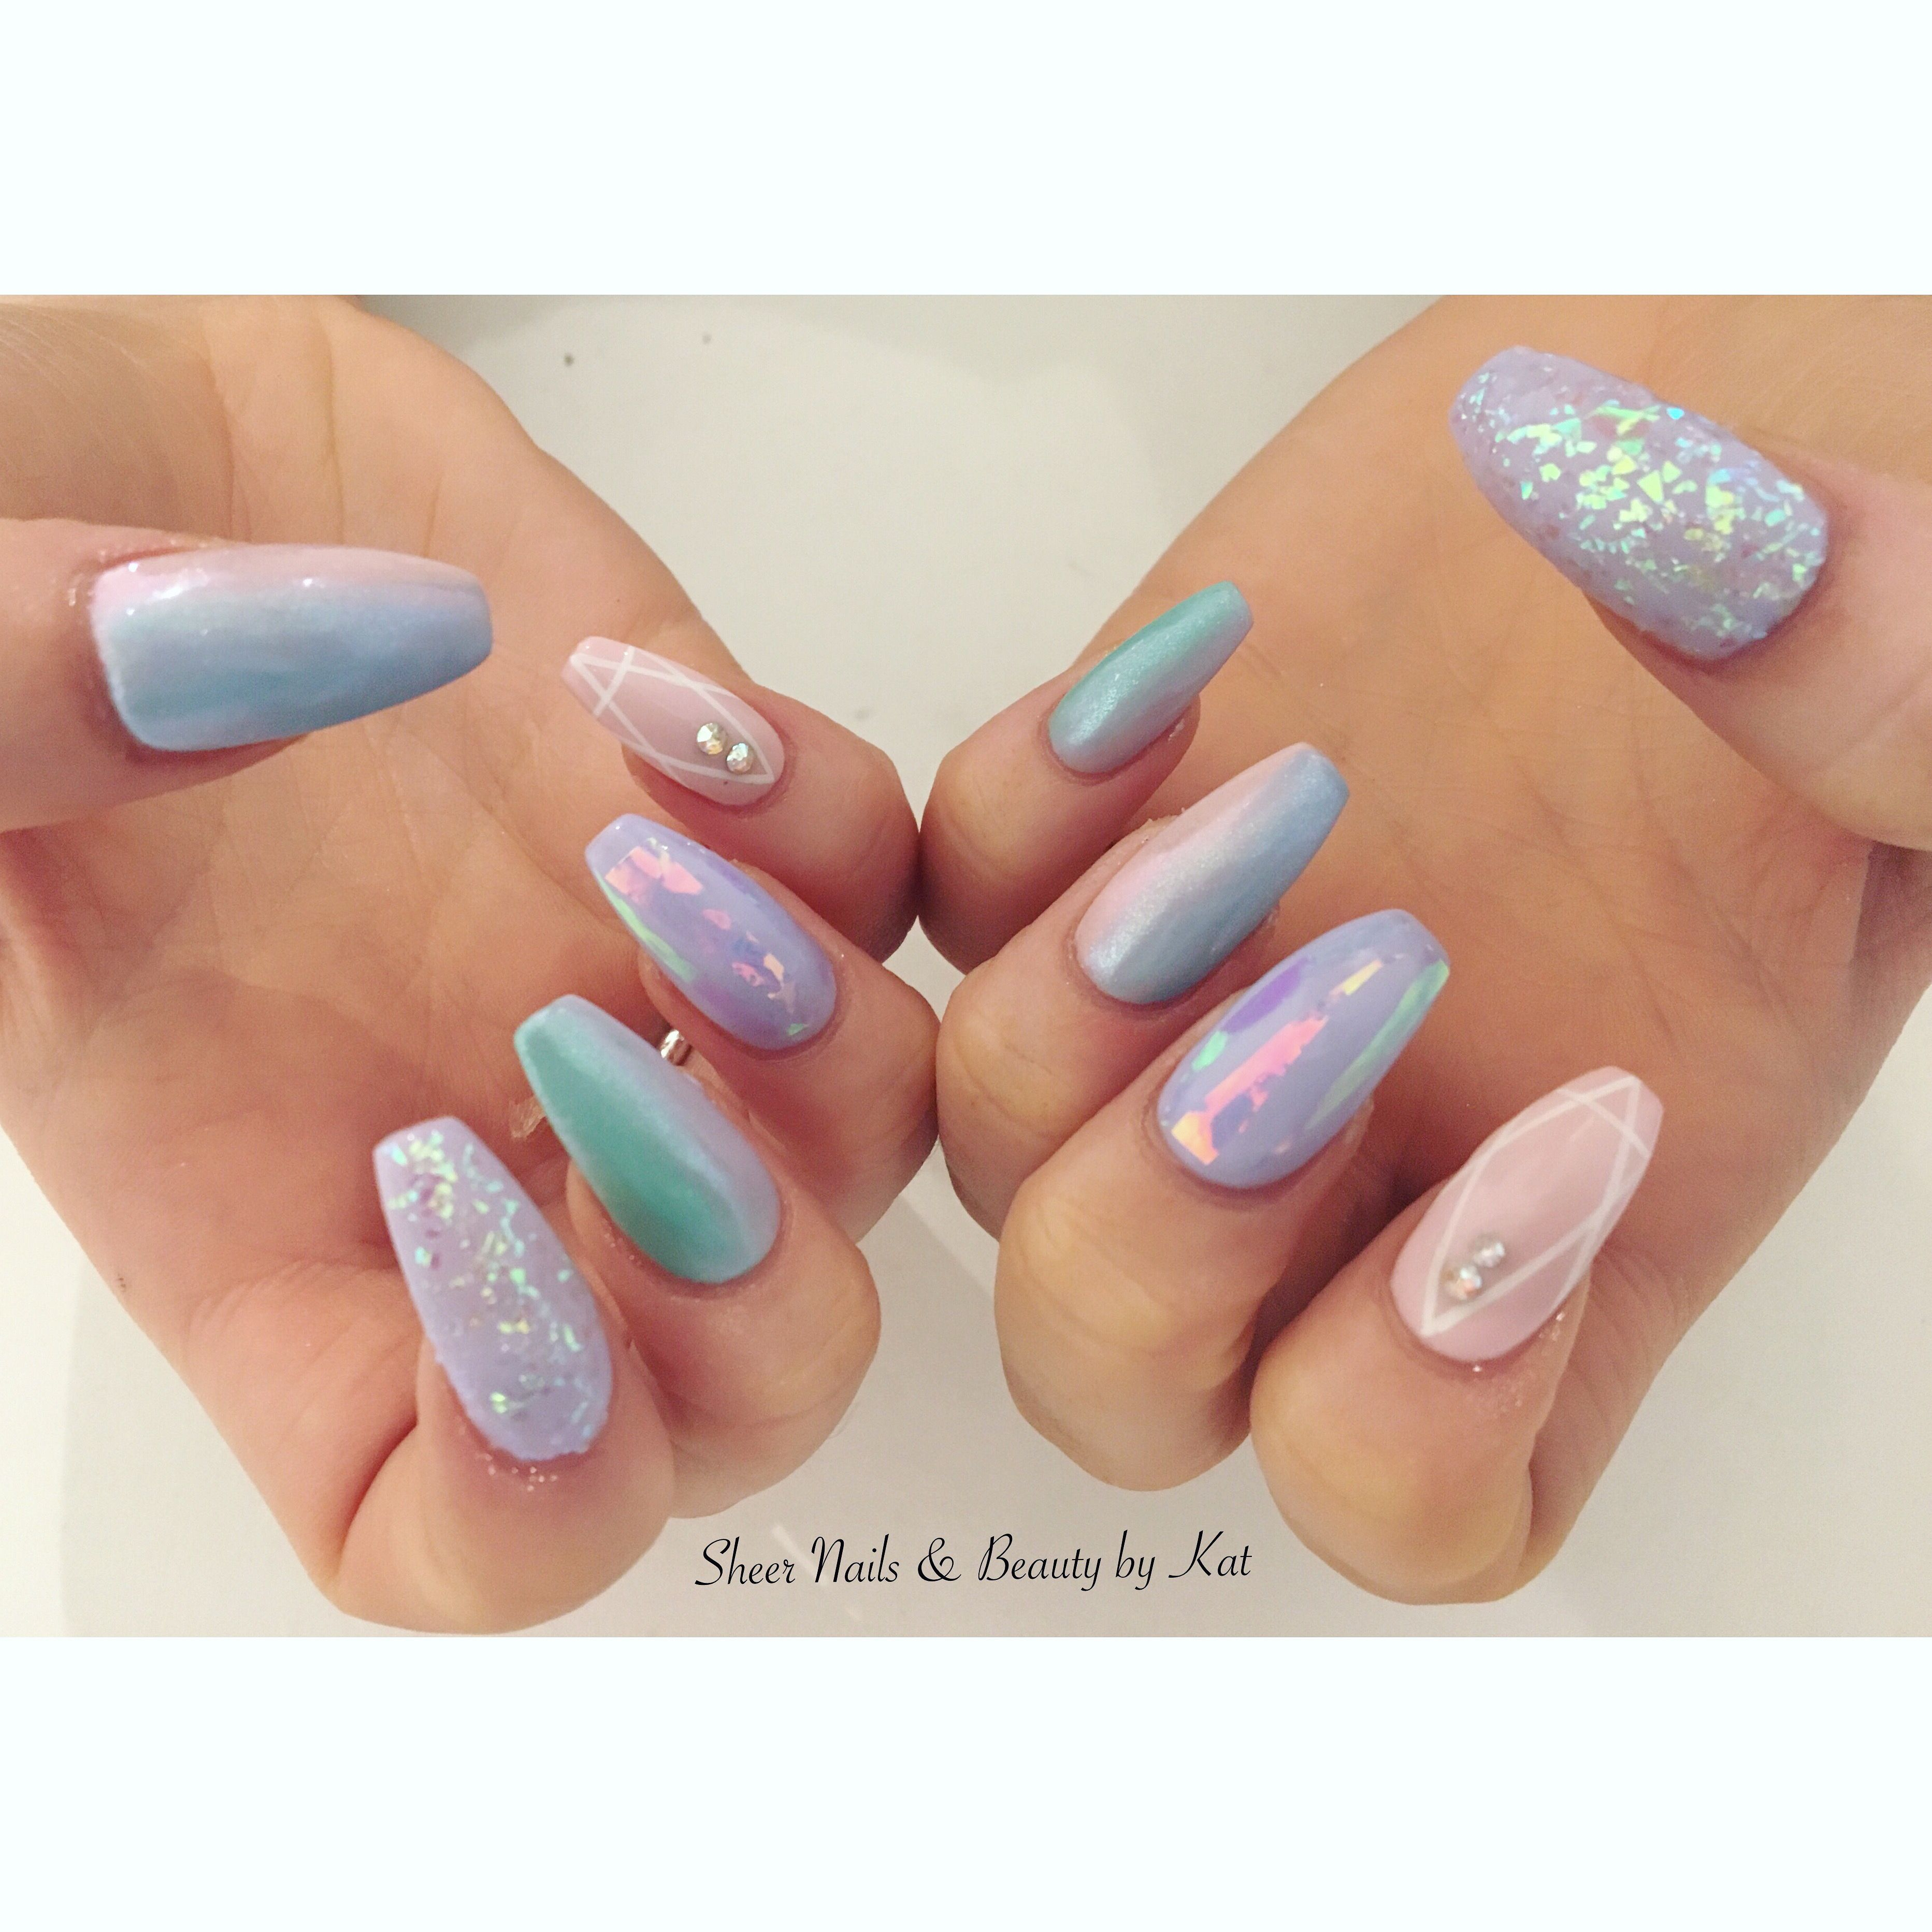 Mermaid Nails Prohesion Sculpted Acrylics With Angel Paper Mylar Flakes And Ombre Gel Mylar Nails Opal Nails Angel Paper Nails